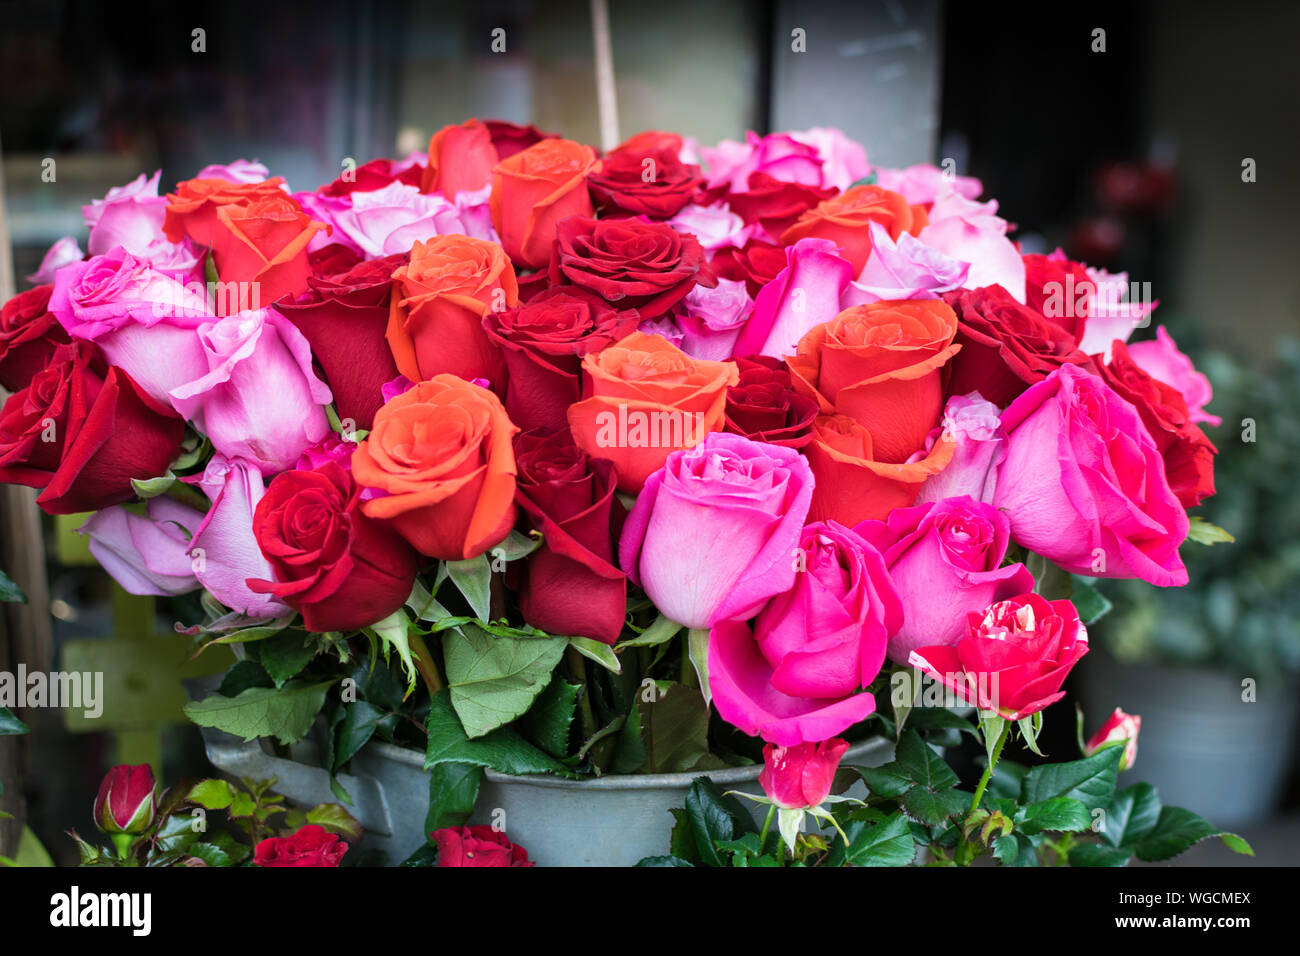 Beautiful Flowers Ready For Valentines Bouquets Of Brightly